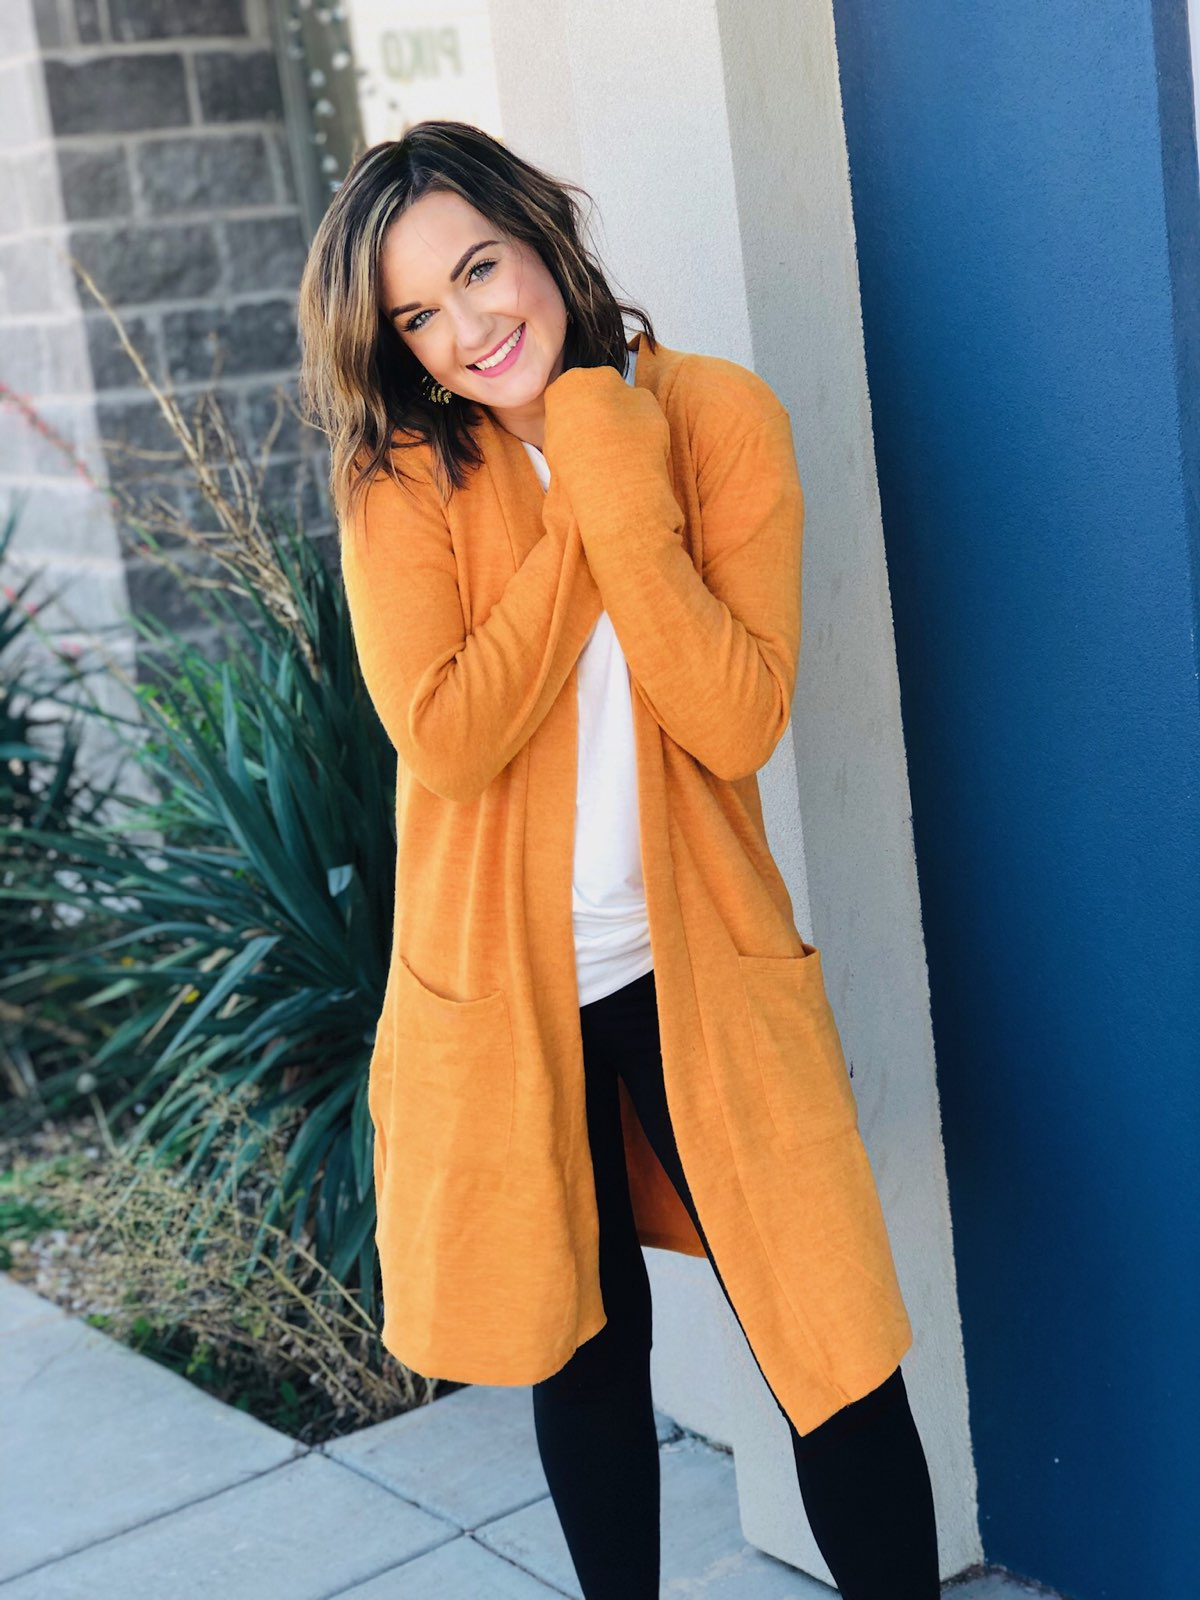 The STEAL Longline Cardigan